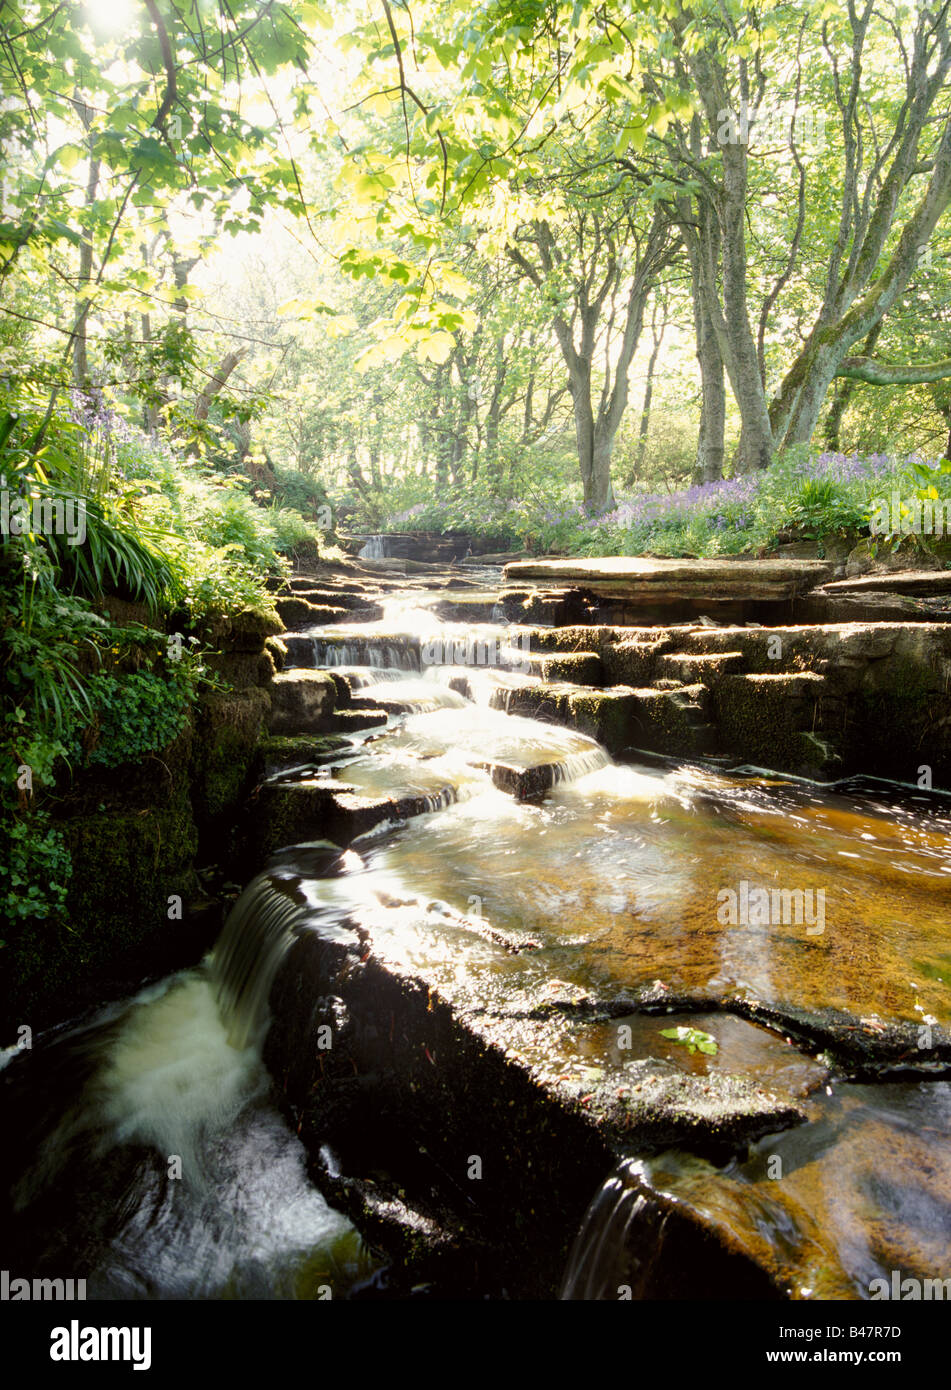 dh Woodwick House EVIE ORKNEY Waterfalls river bluebells wood scottish uk spring stream scotland Stock Photo